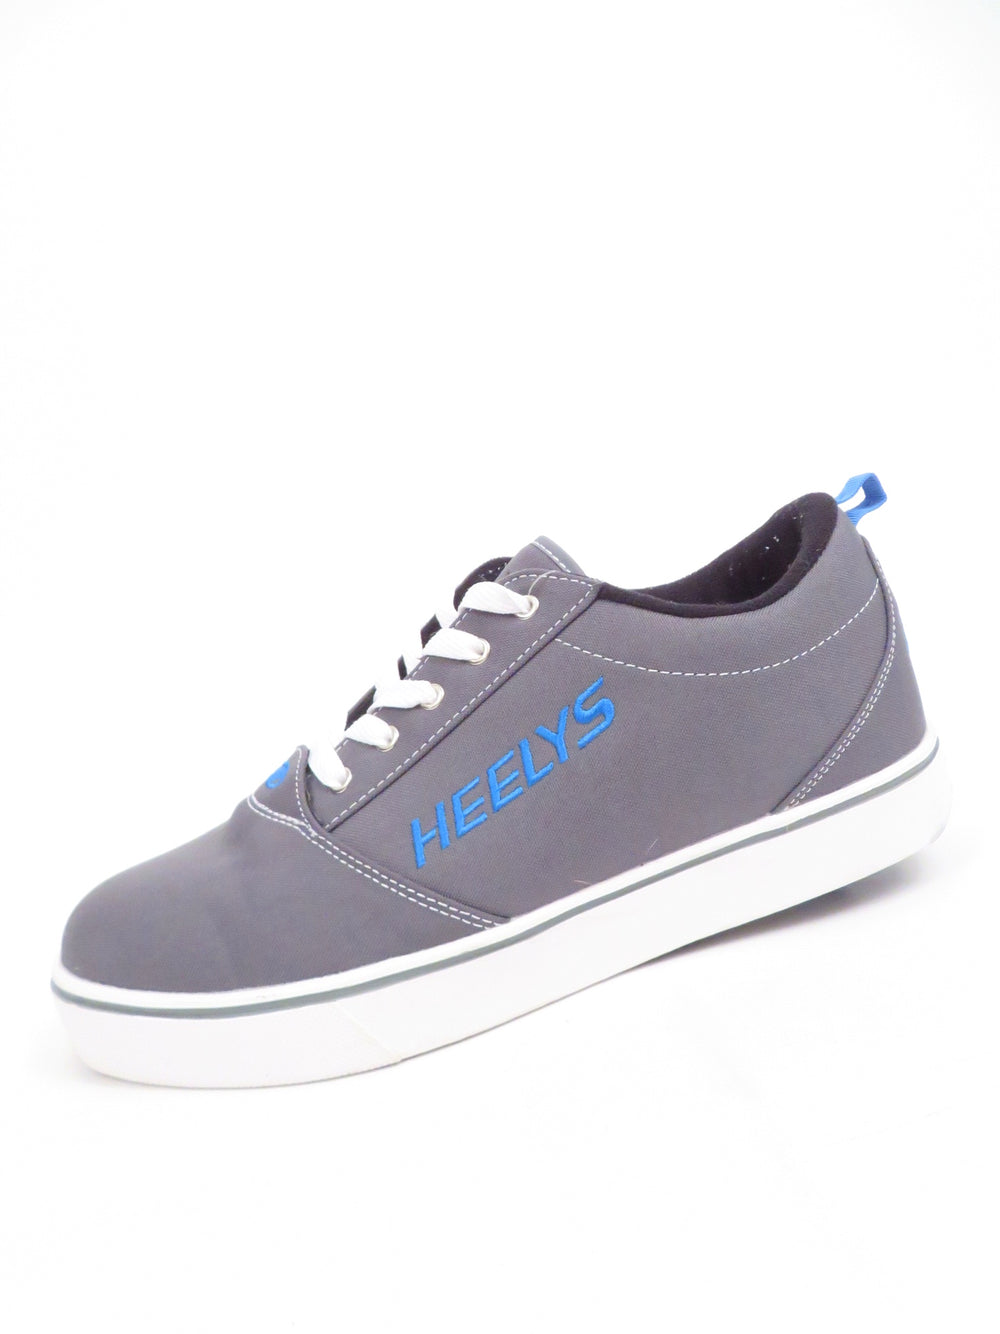 heelys 'pro 20' grey/white/royal shoes. features branding embroidered at tongue, heel, and sides. comes with an optional wheel or flat plate at heel with tool.